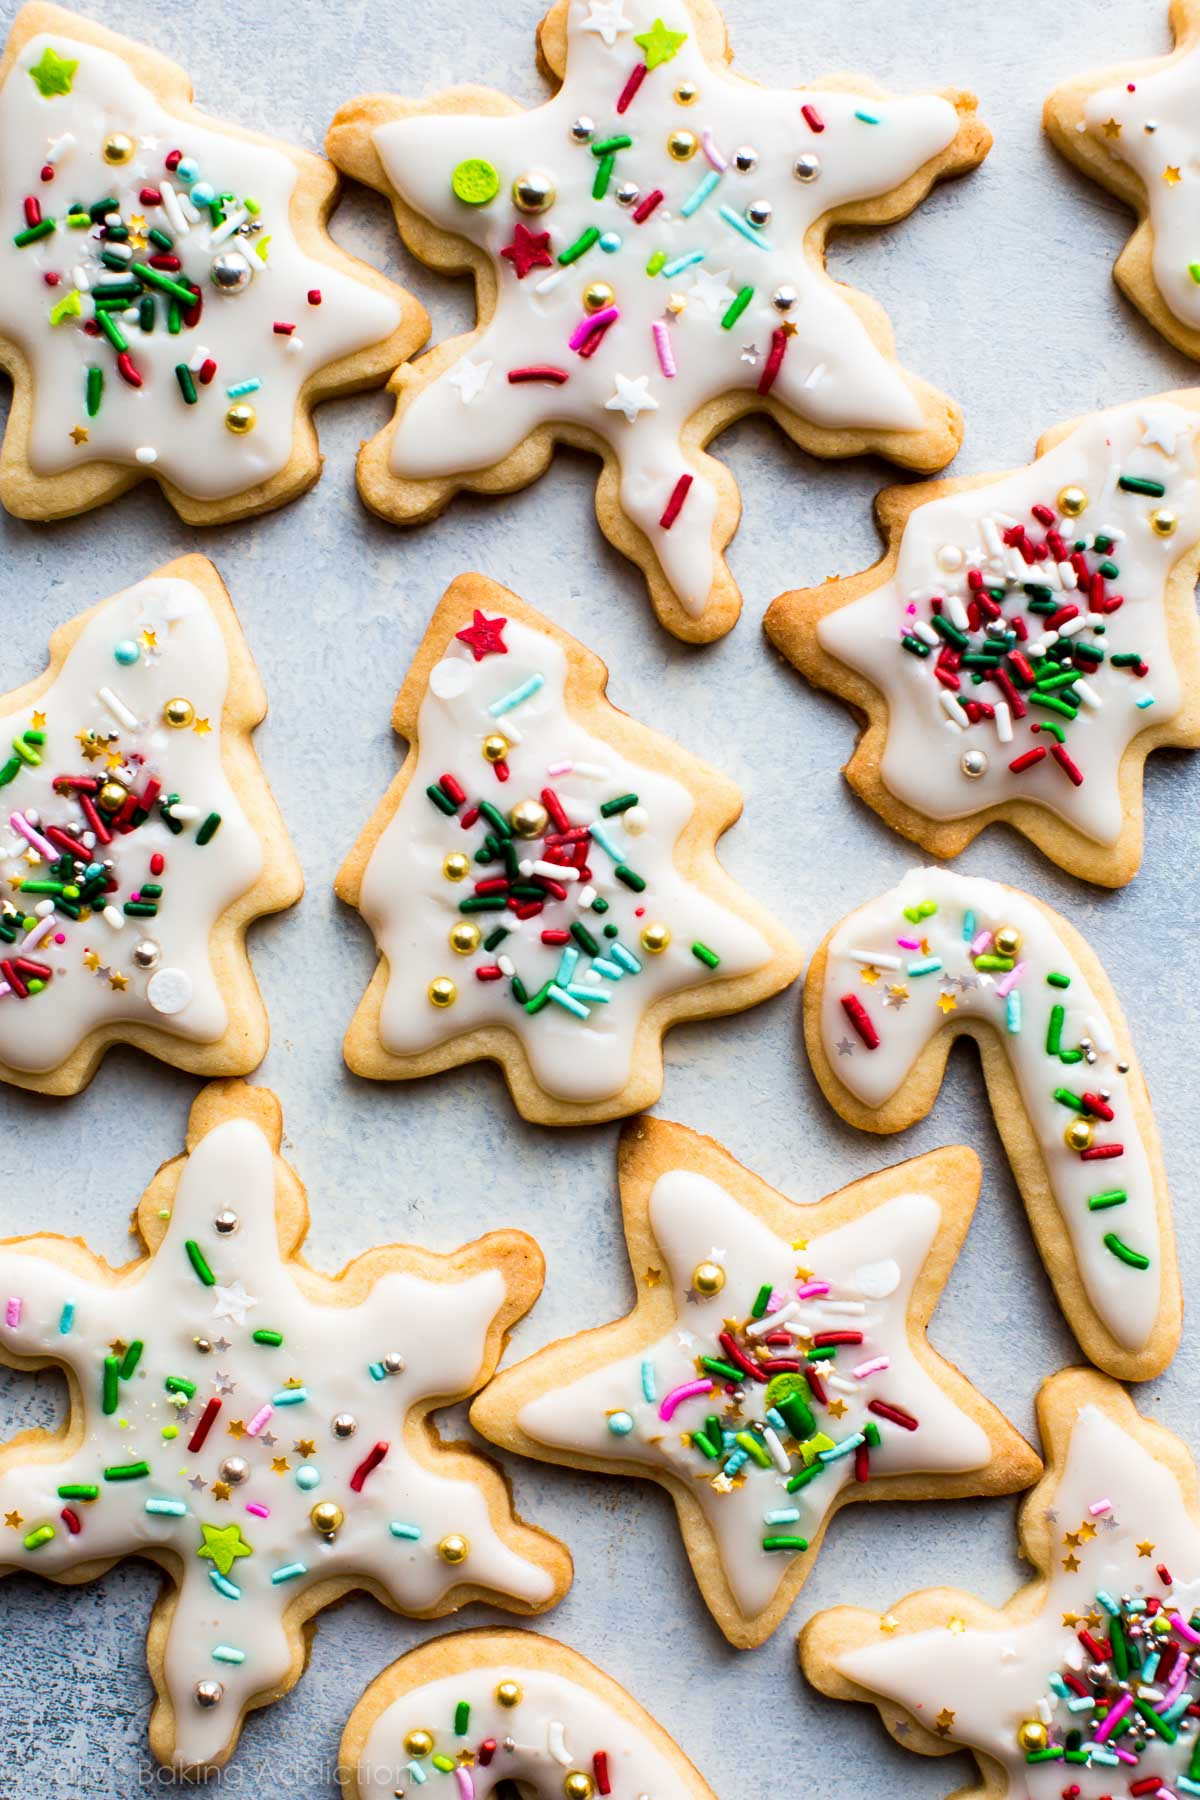 Icing Recipe For Sugar Cookies  Holiday Cut Out Sugar Cookies with Easy Icing Sallys